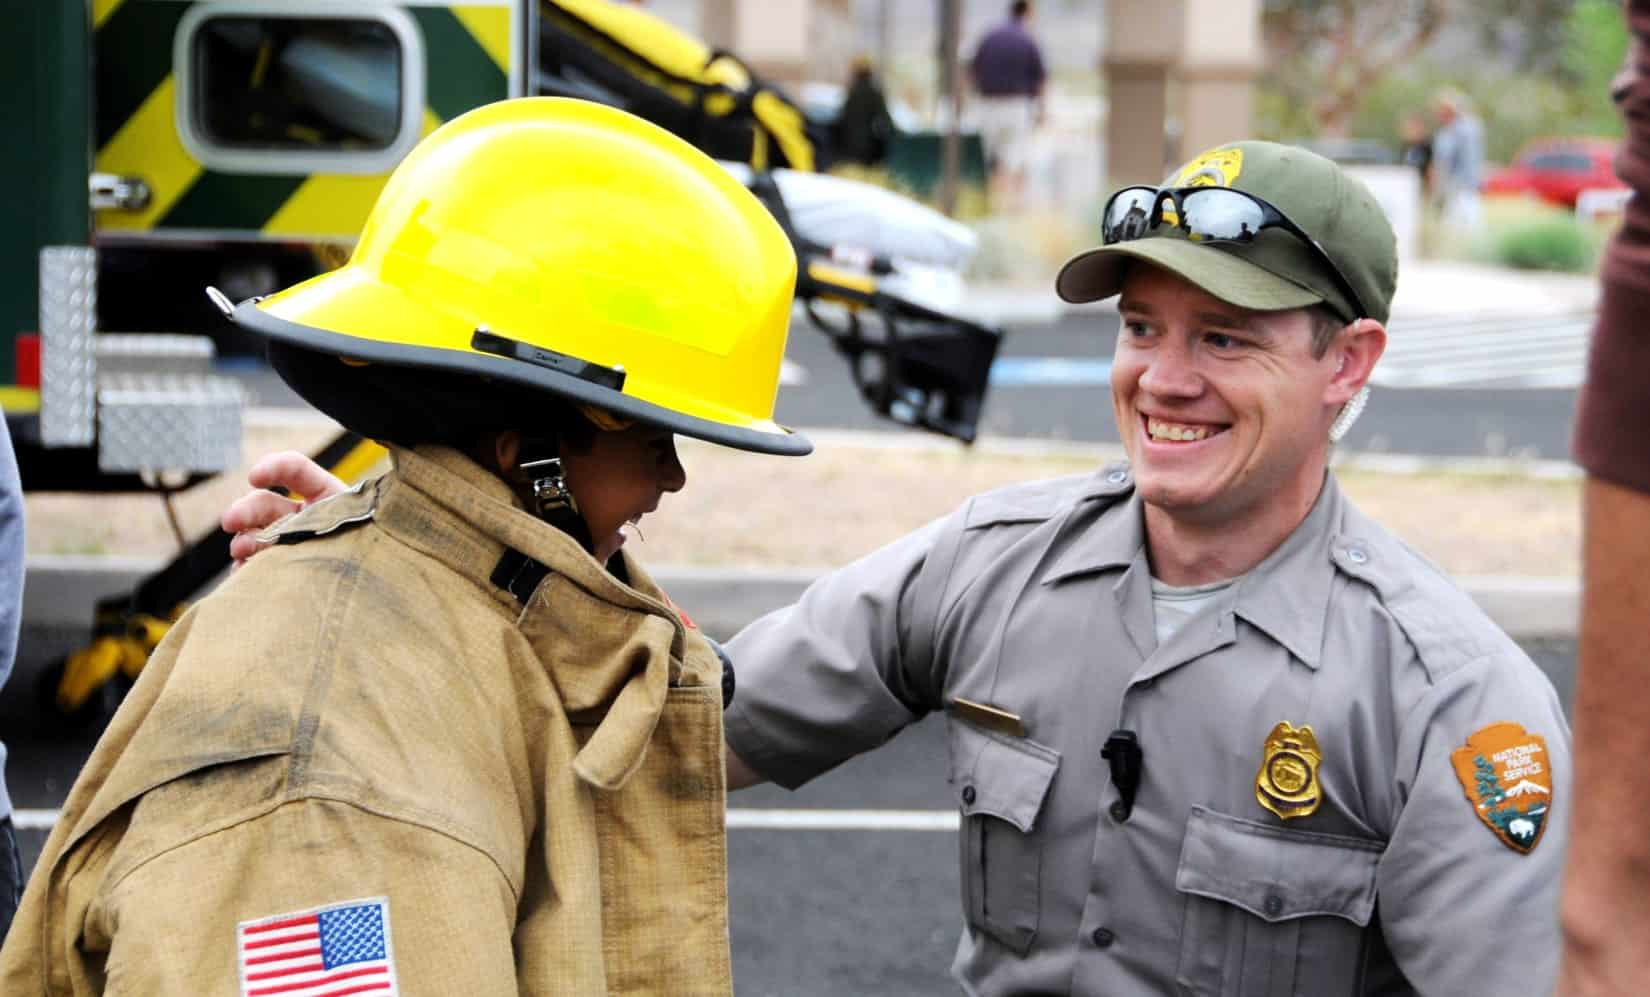 A ranger with a student who is happily testing out a wildland firefighting uniform